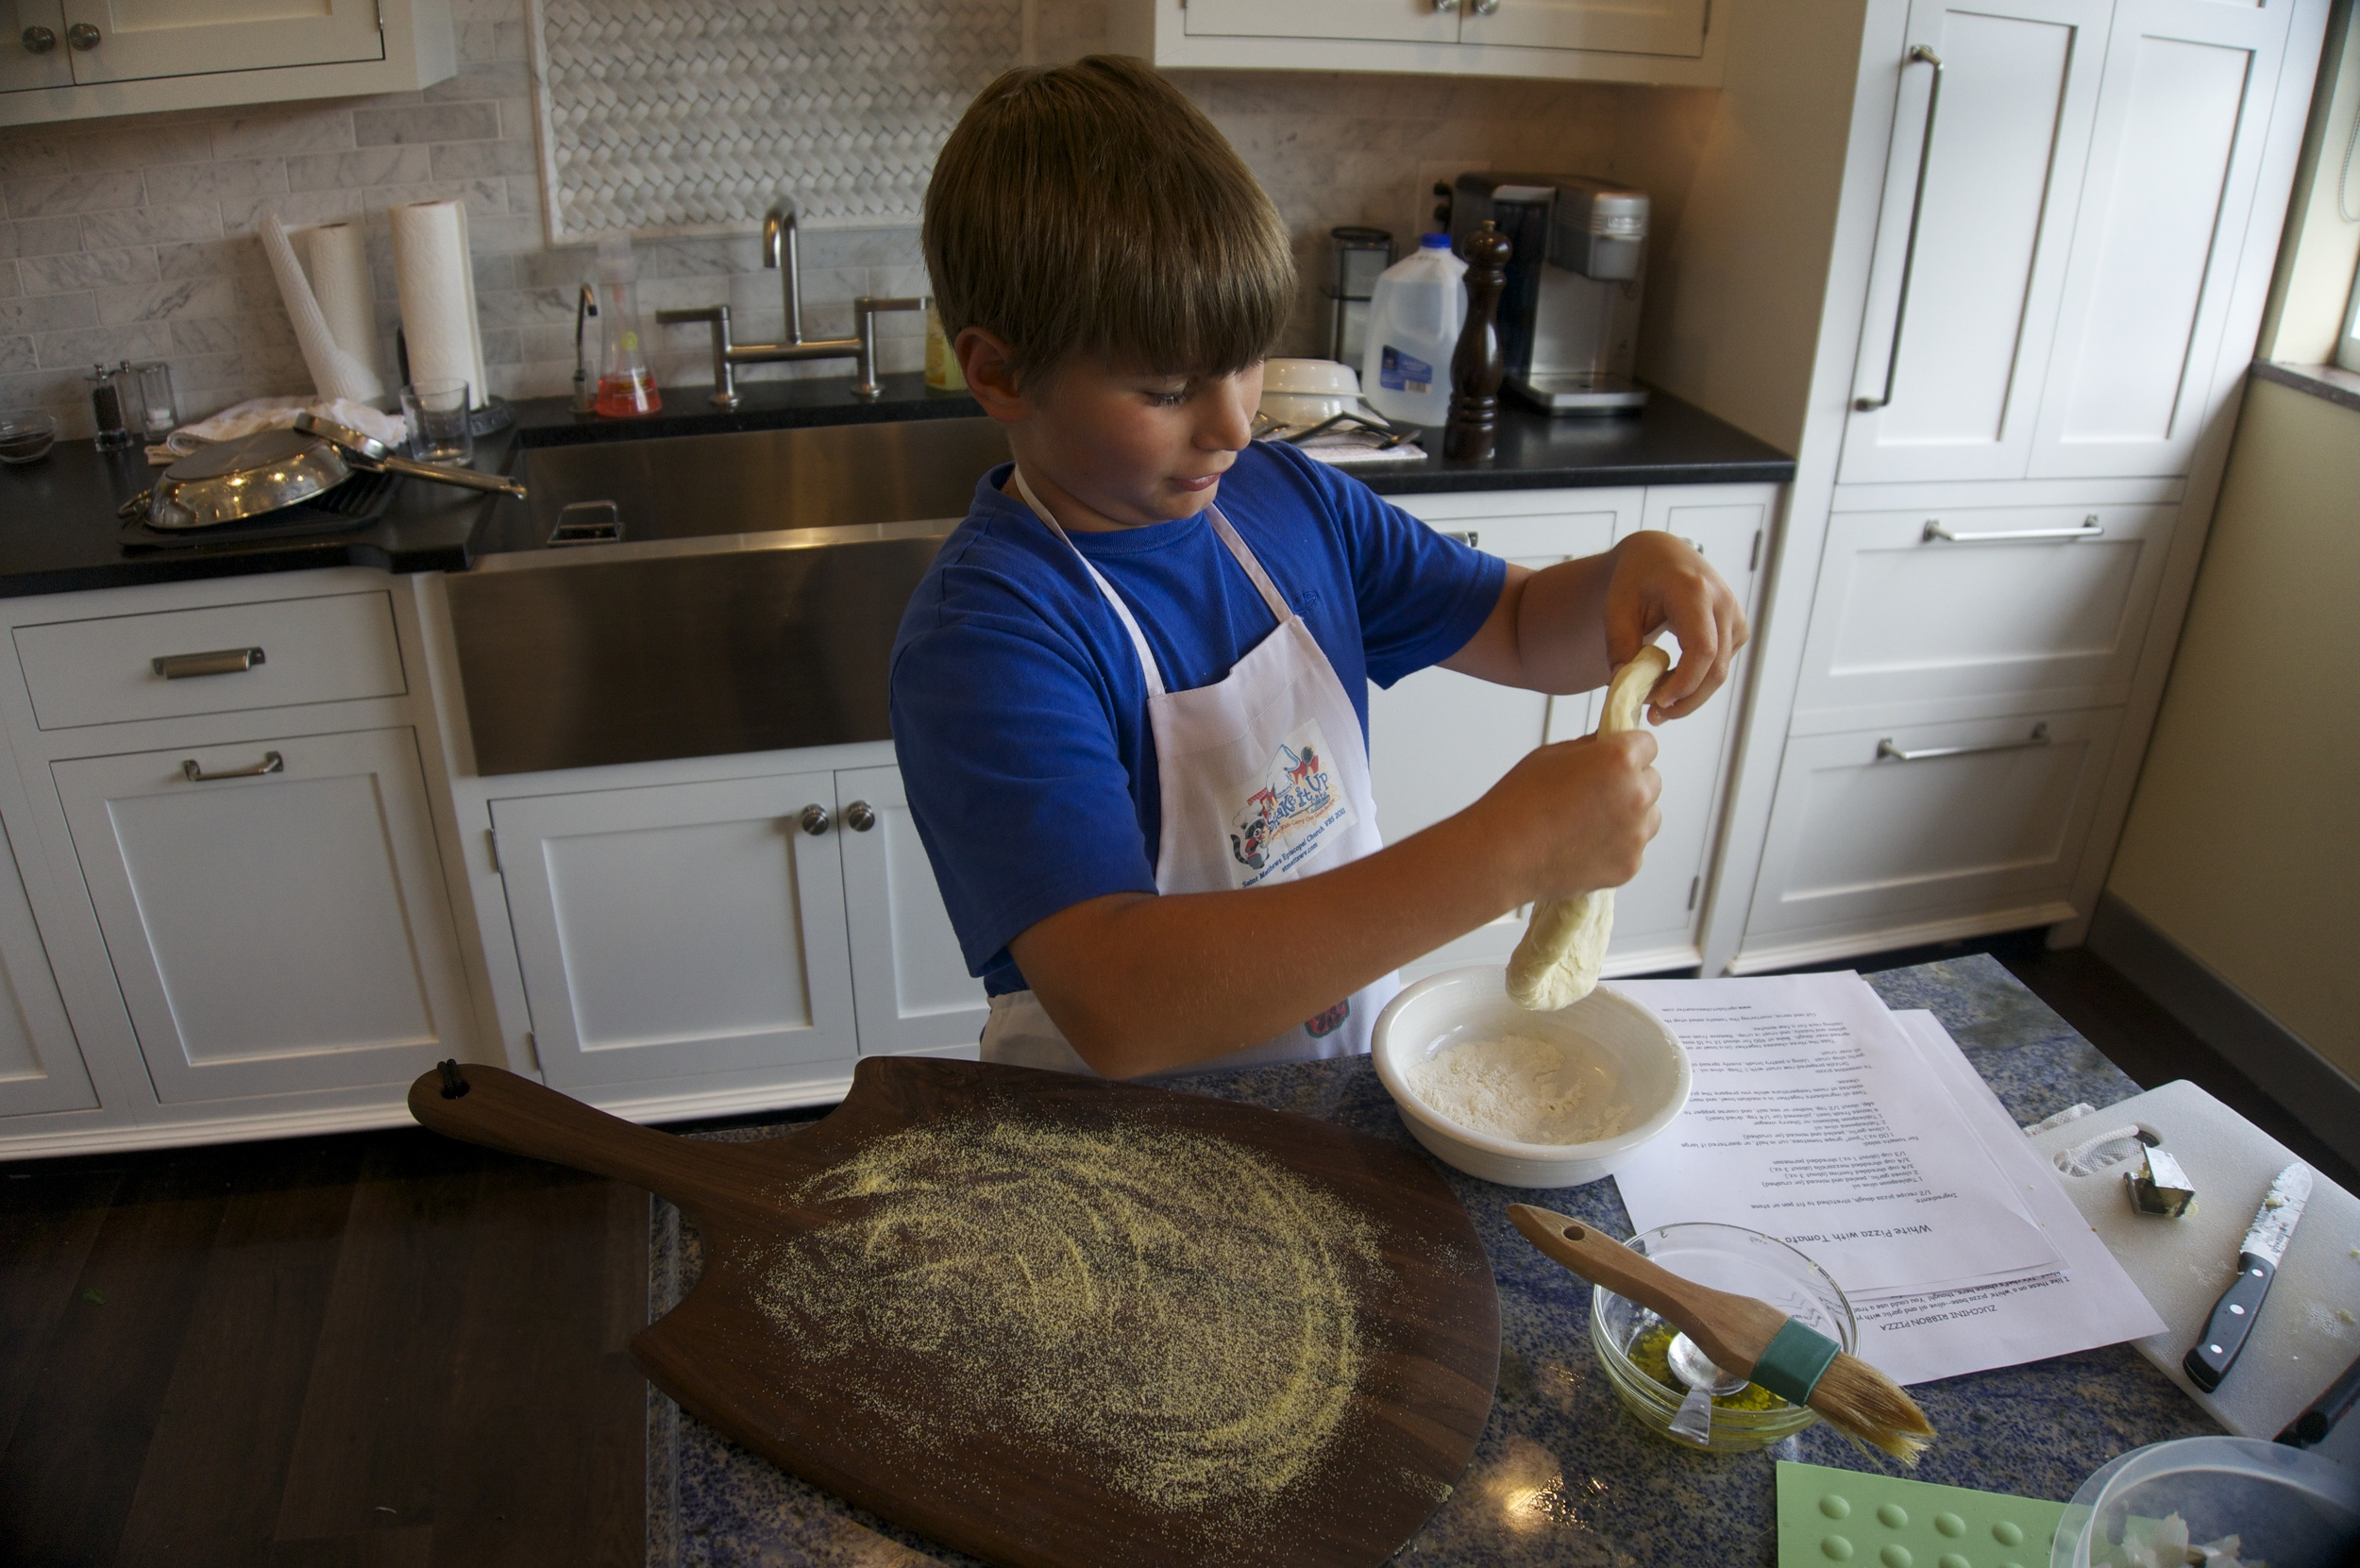 9-year old Isaac stretches the dough